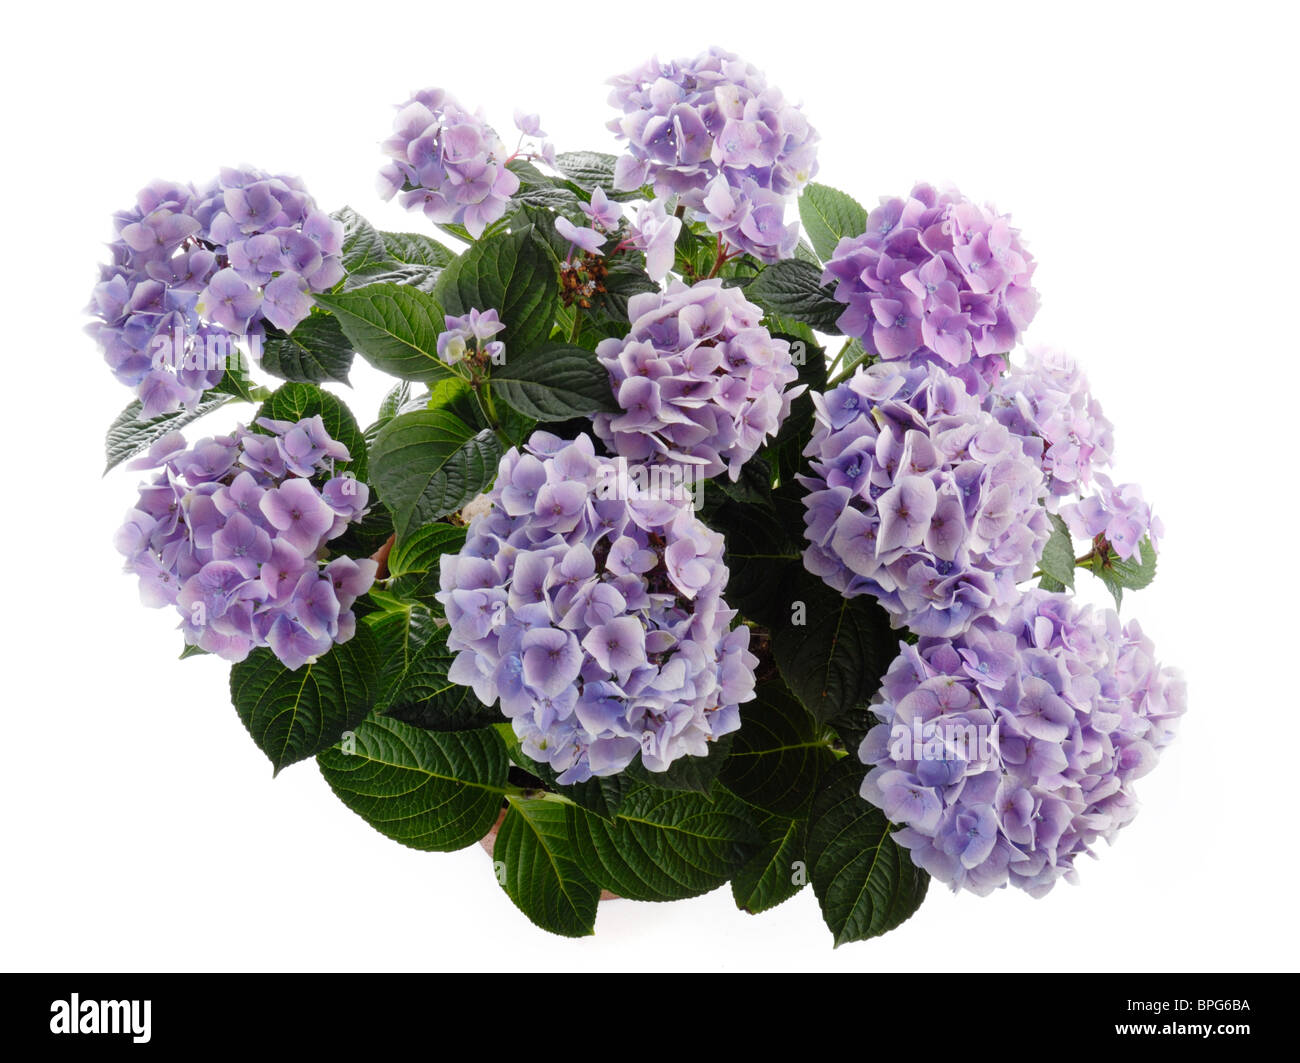 Hortensia Stock Photos Hortensia Stock Images Alamy